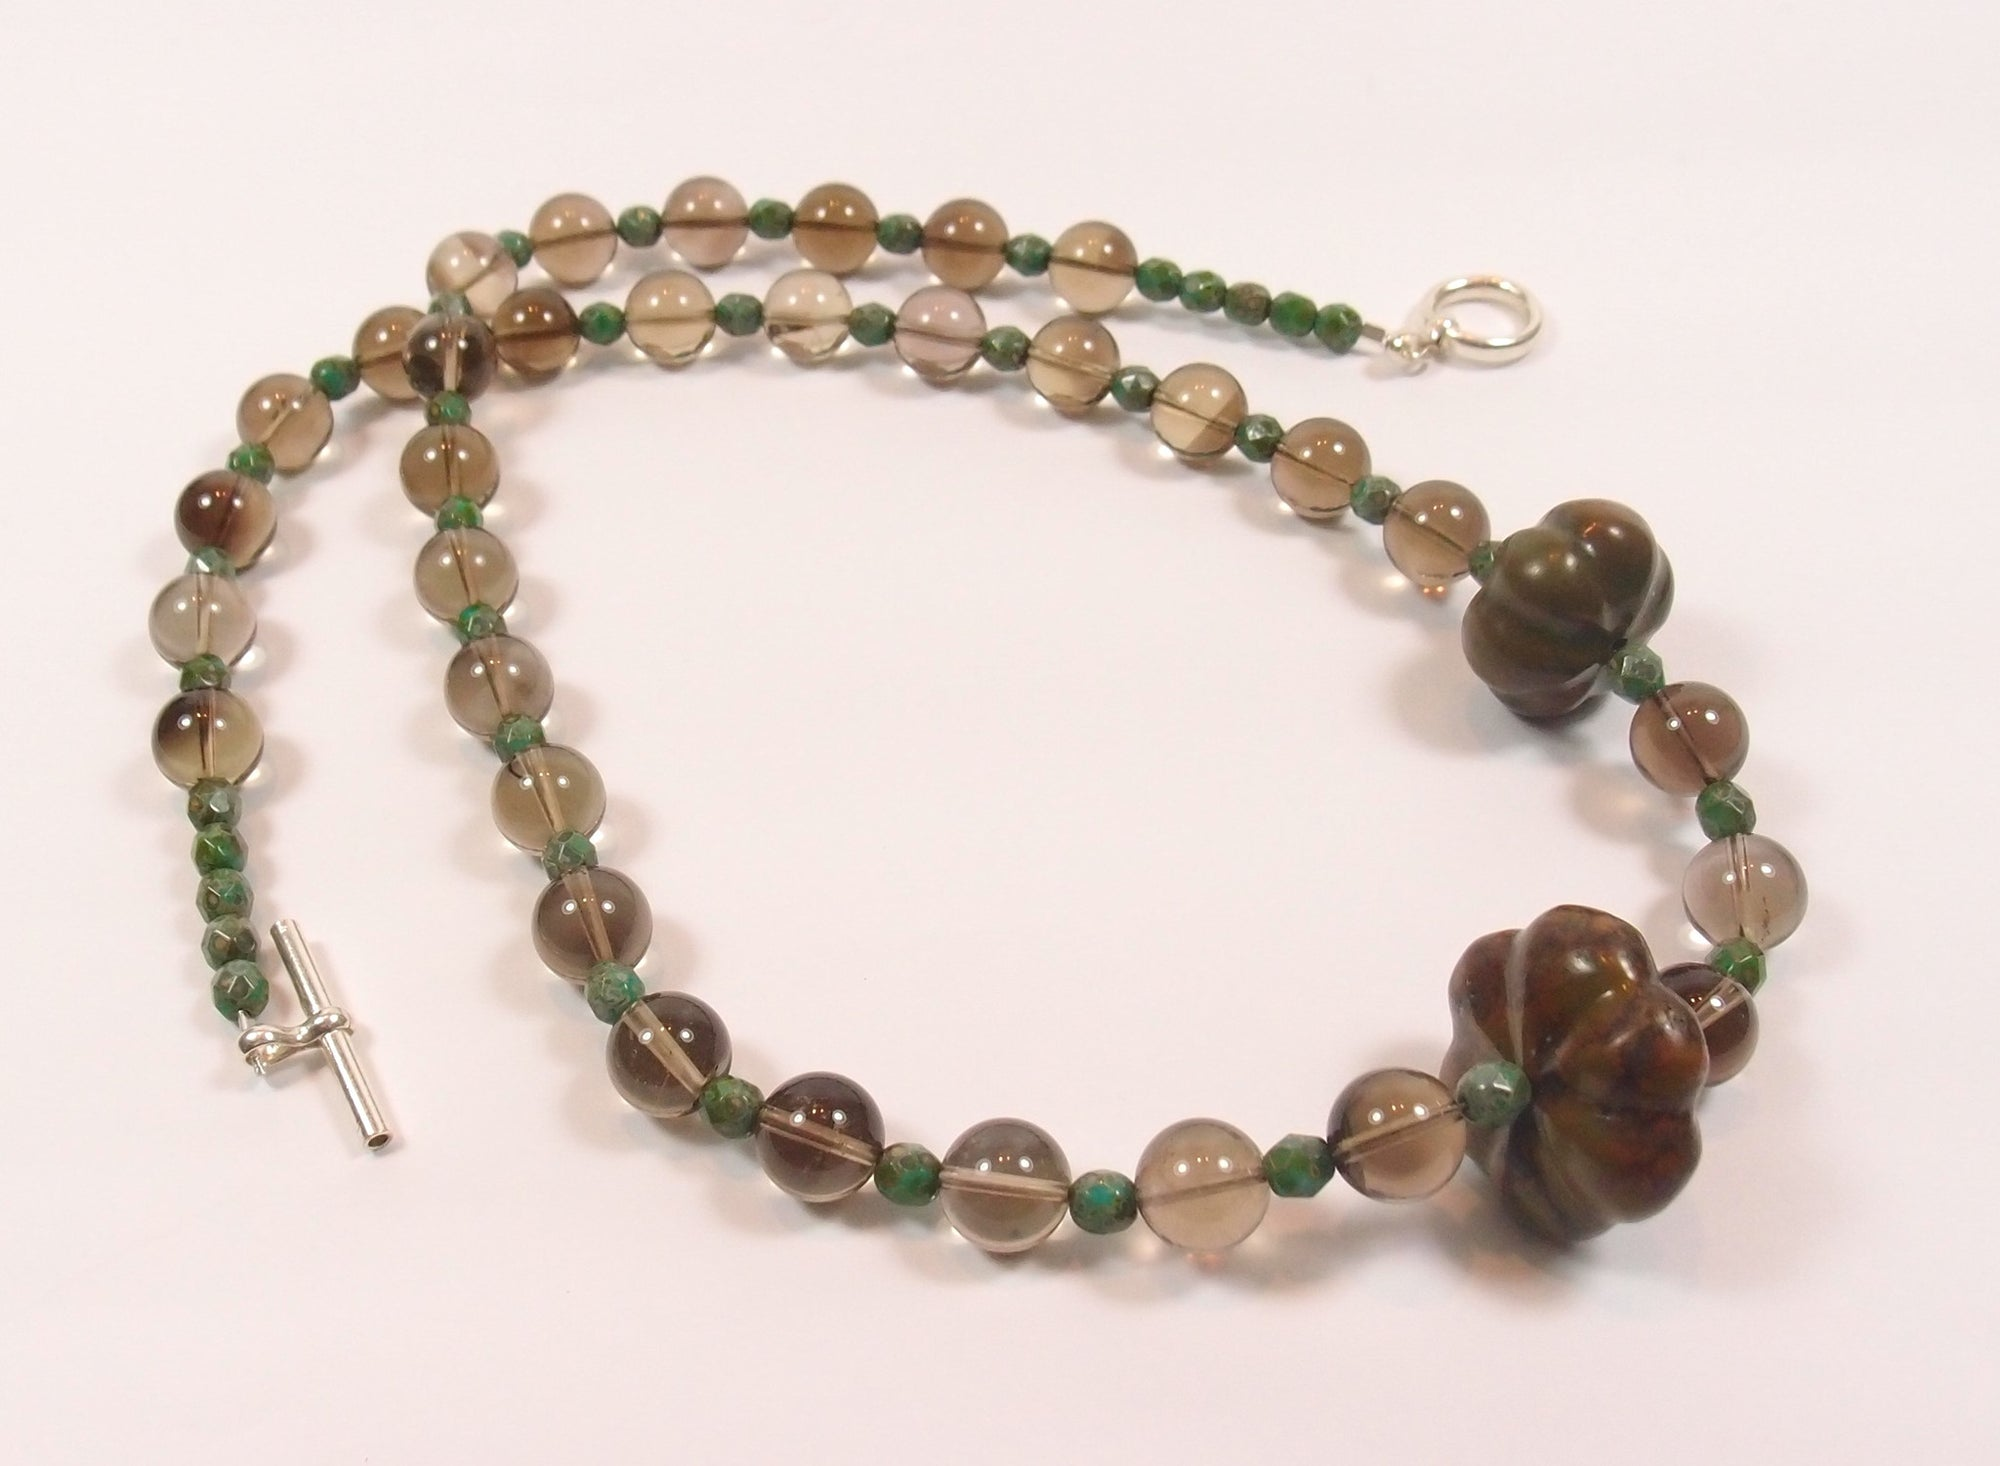 Smokey Quartz and Glass Necklace with Chinese Turquoise: Pietra